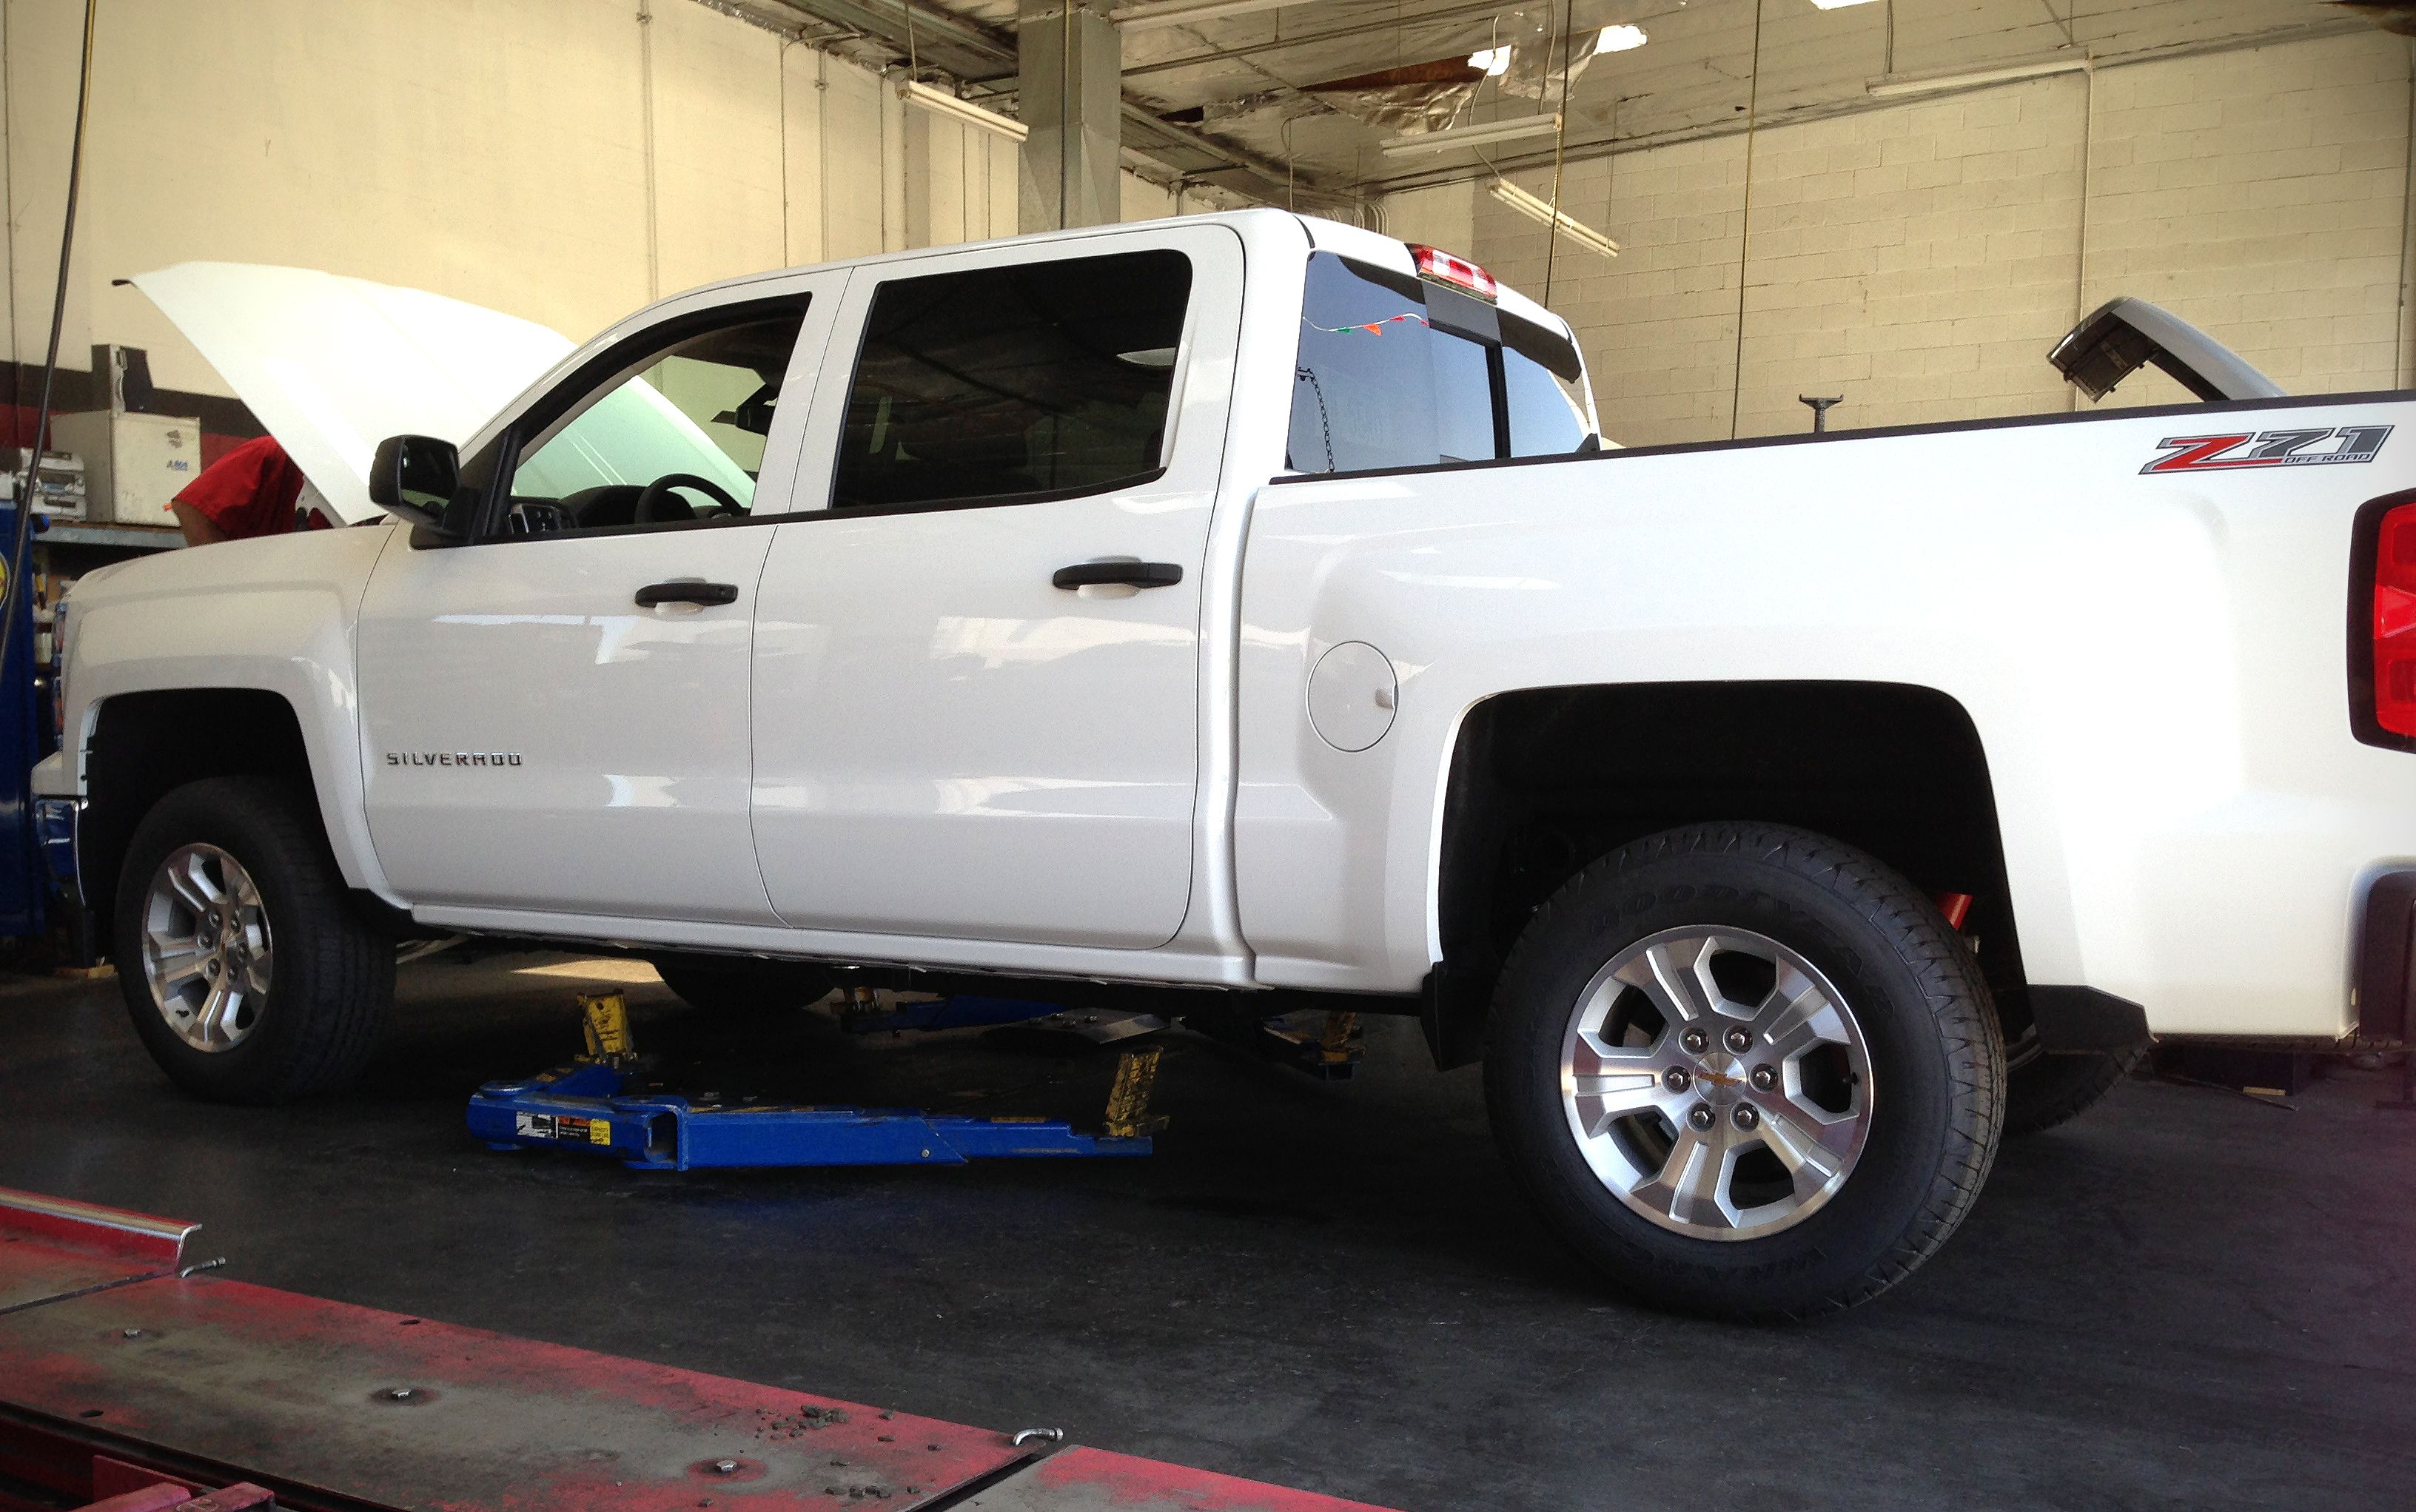 Pro comp 6 inch crossmember and knuckle lift kit chevrolet silverado 2500hd yes please hell ya pinterest gmc trucks chevy and pro comp